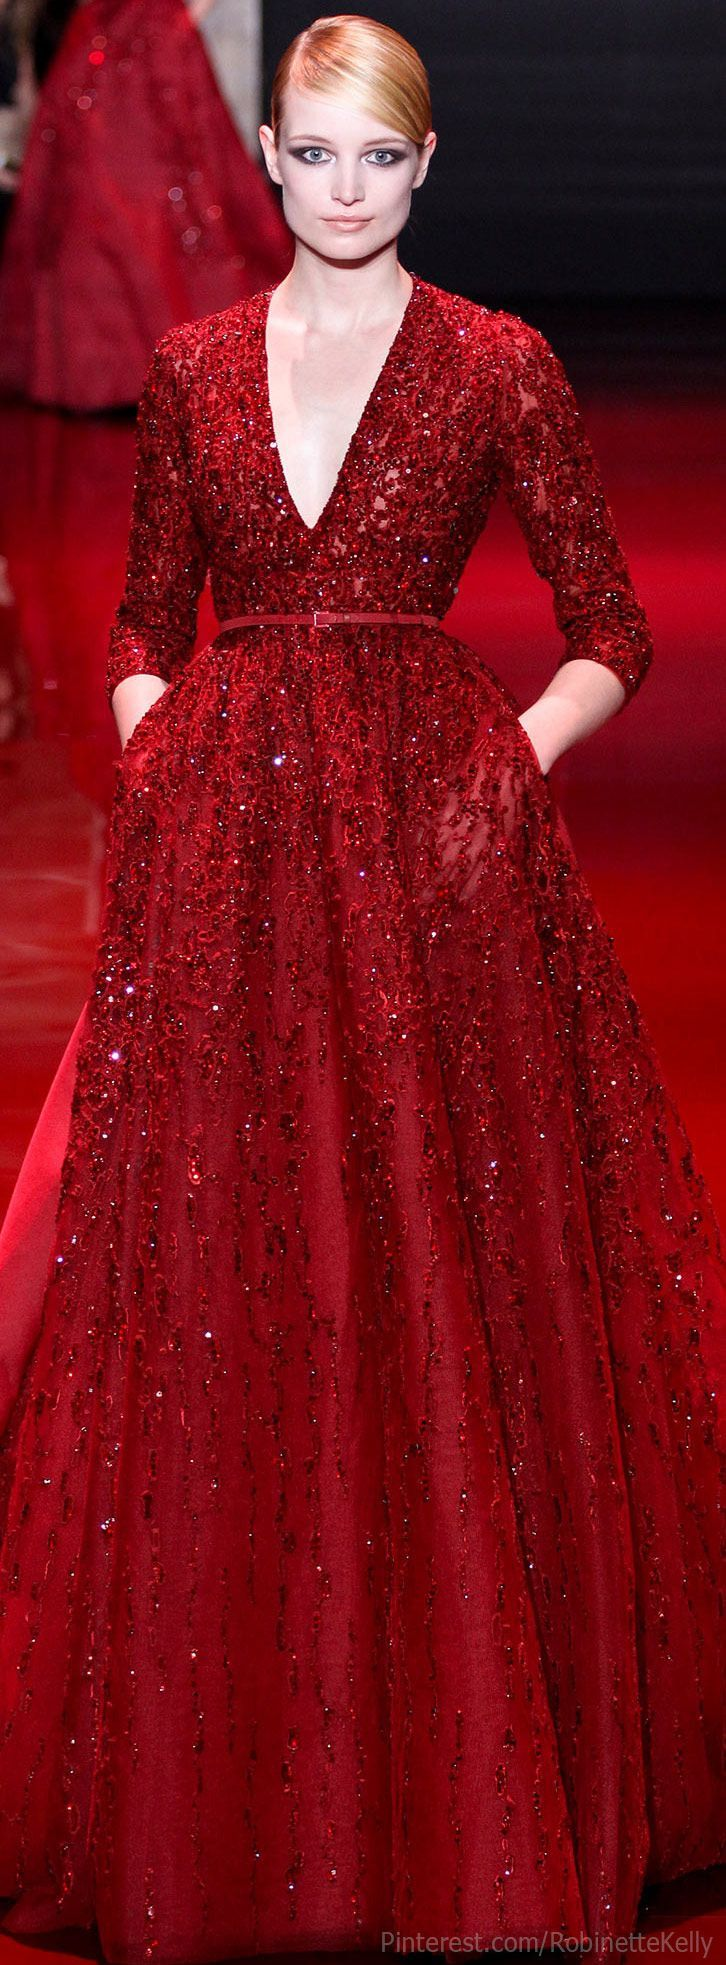 Would love to wear this amazing red dress to a black tie event. HOT!